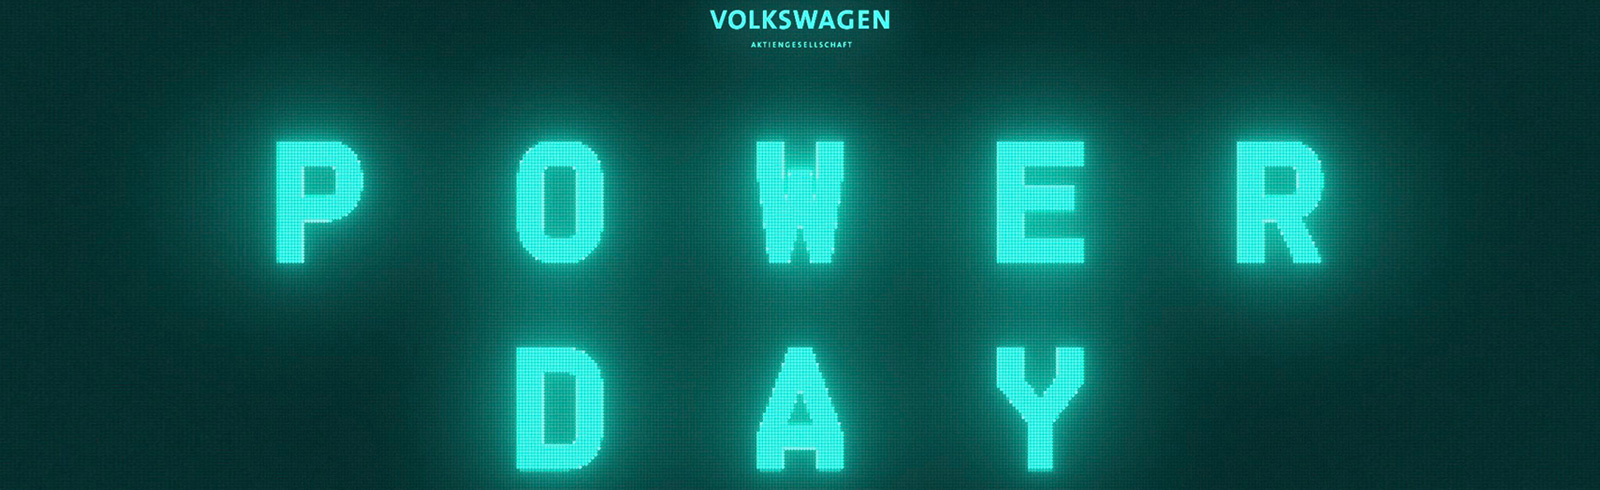 Volkswagen Power Day 2021 scheduled for Monday, March 15